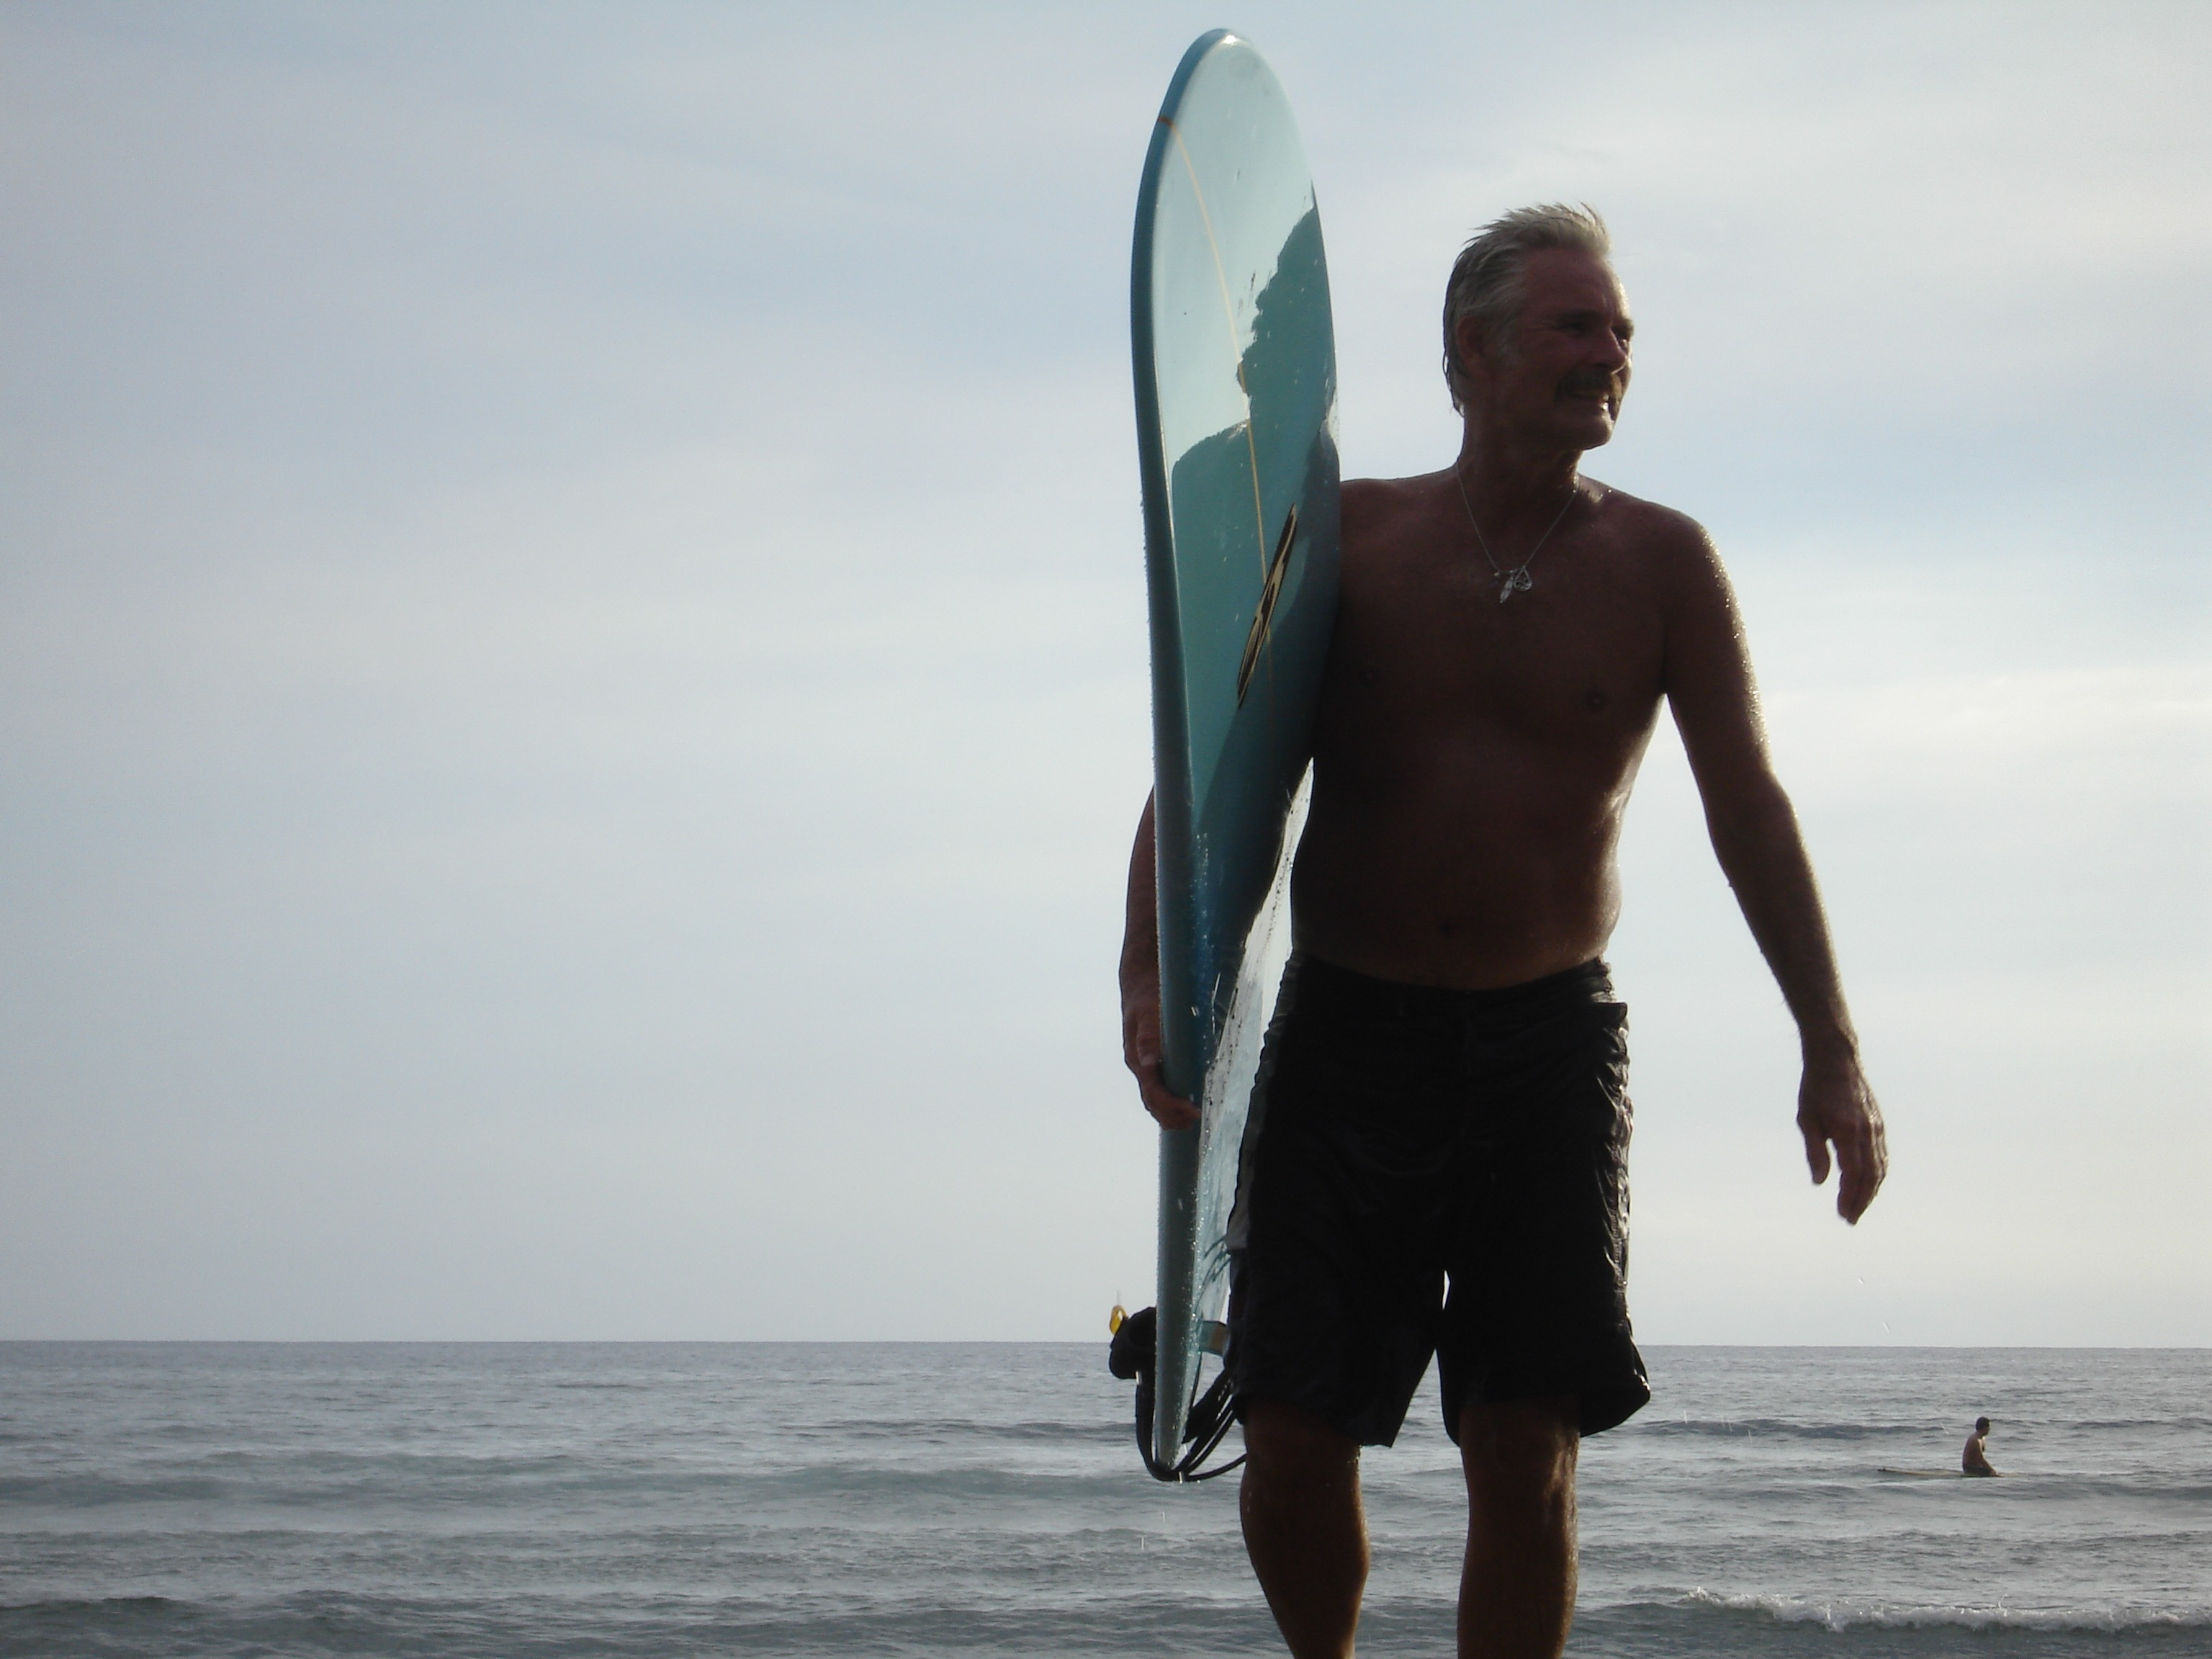 Photo of Mike with his surfboard.